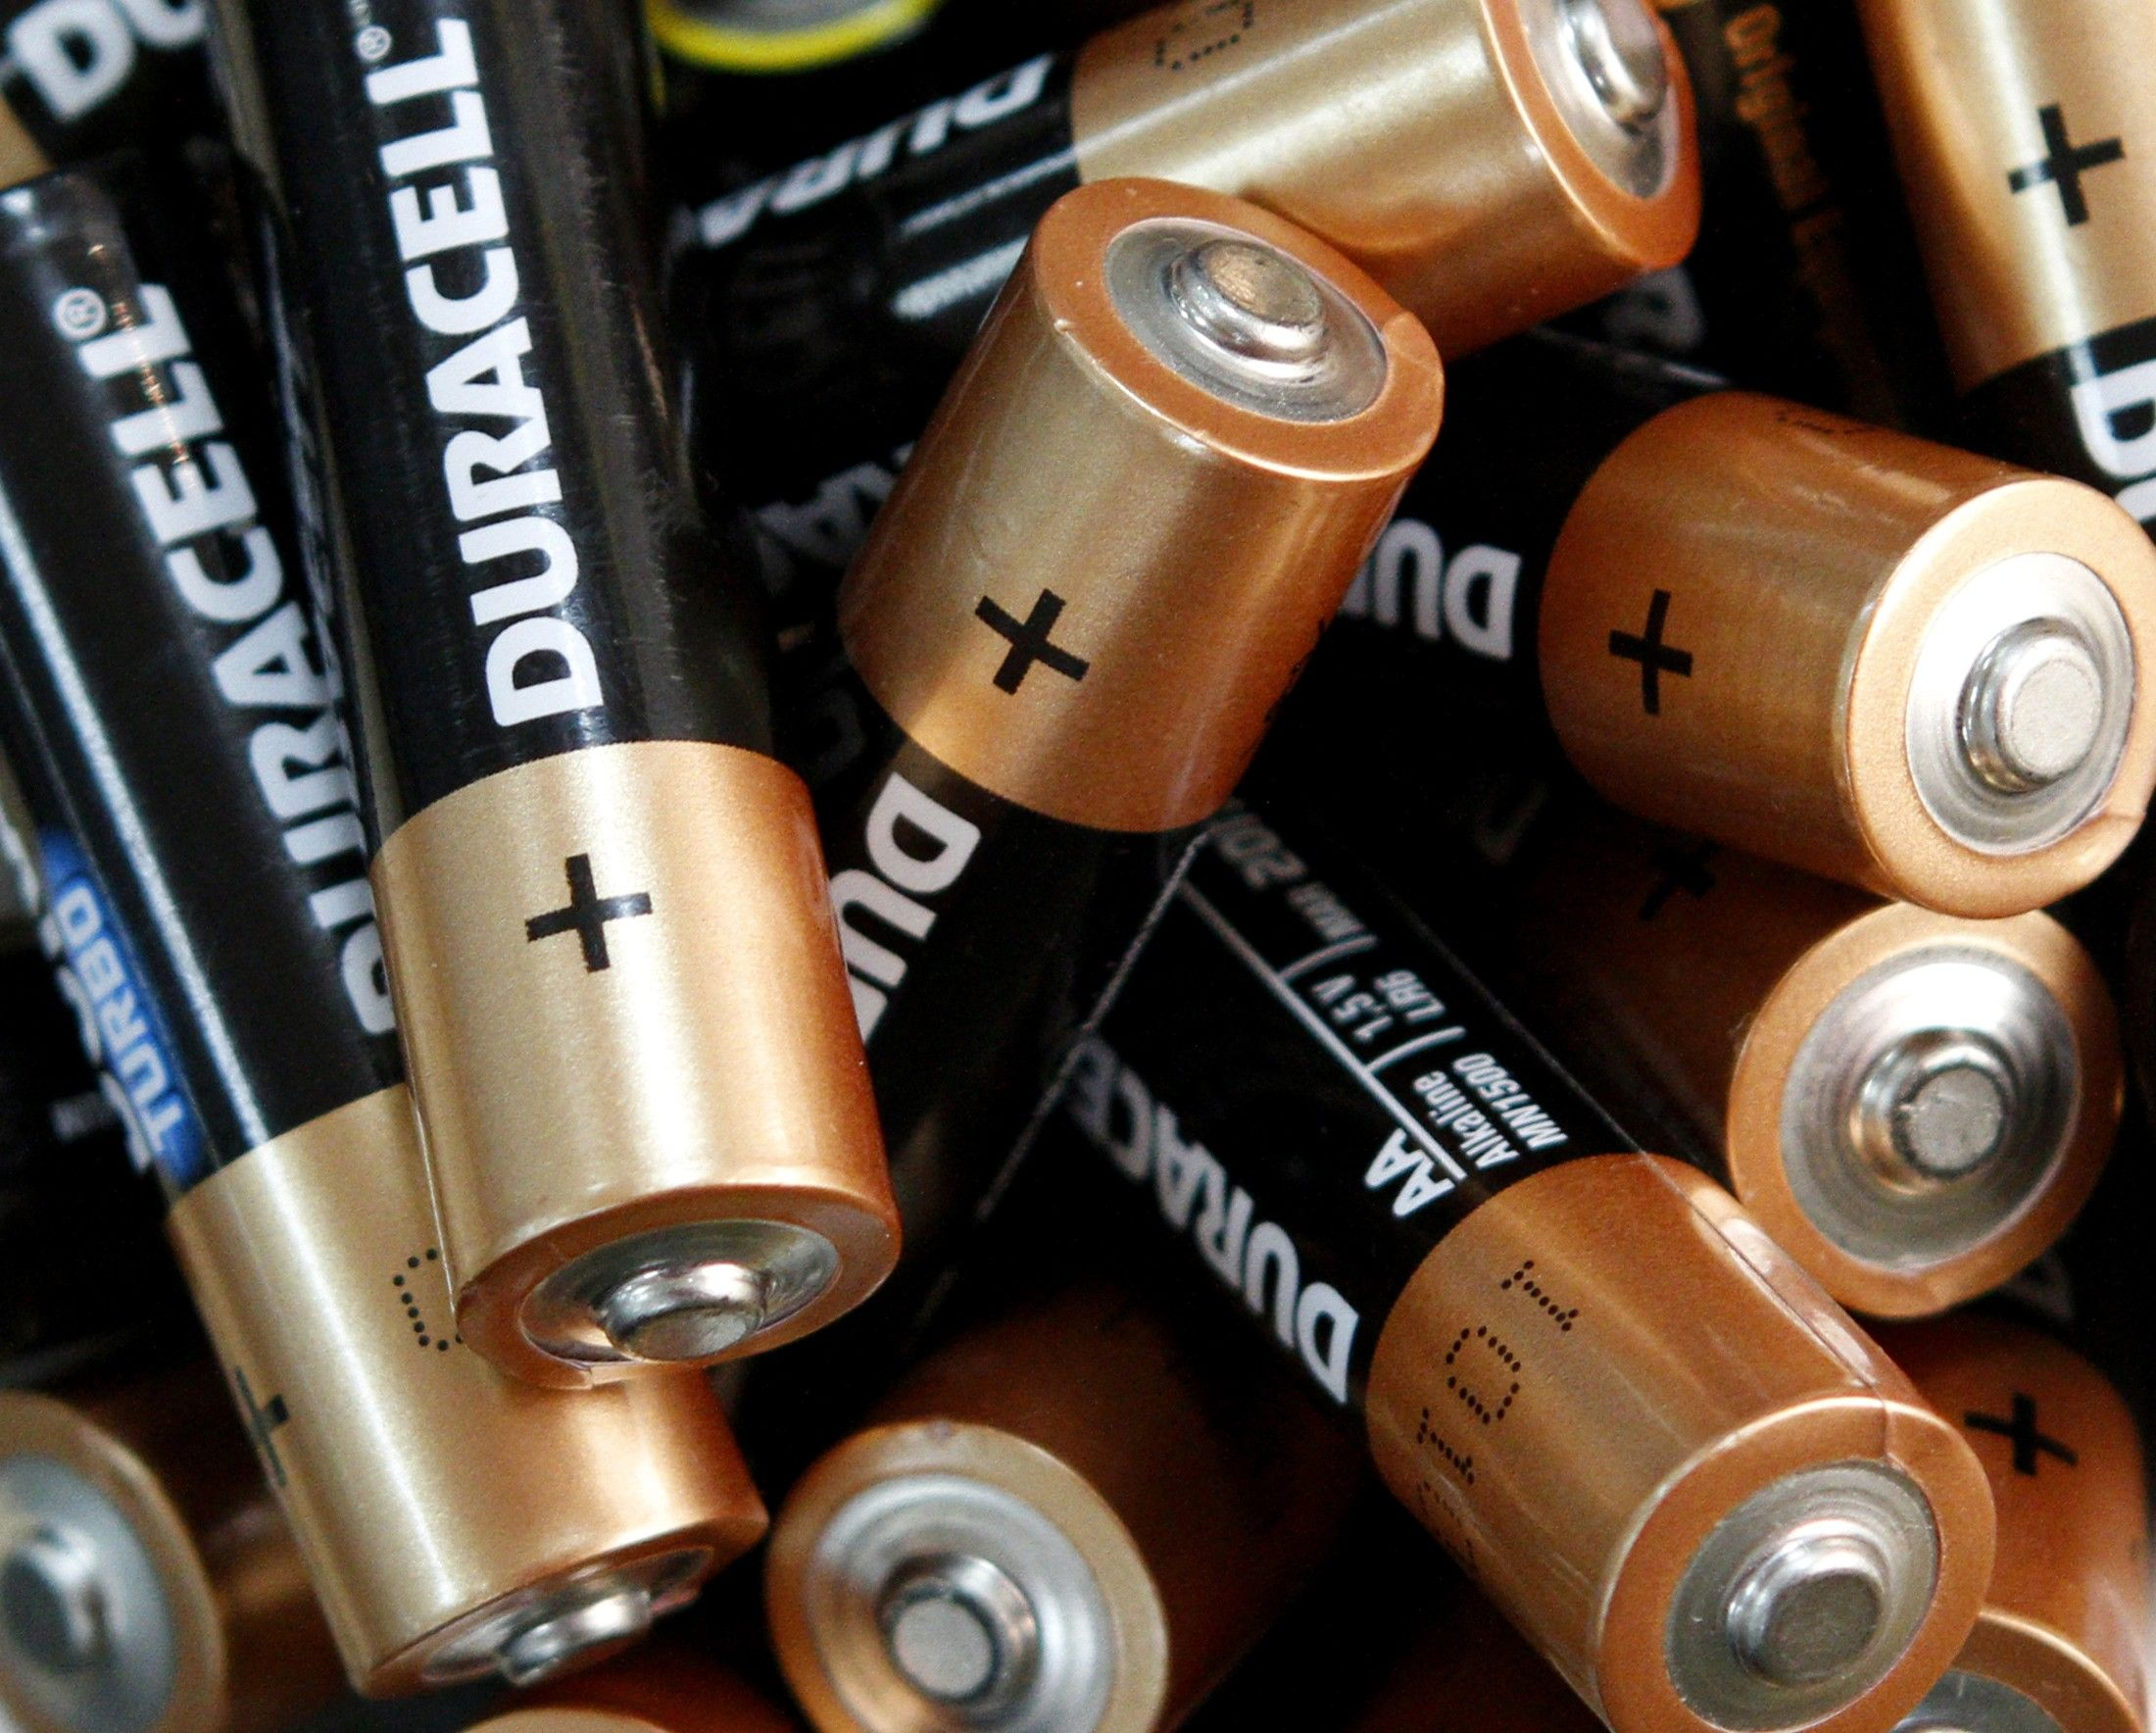 Berkshire Hathaway buys Duracell